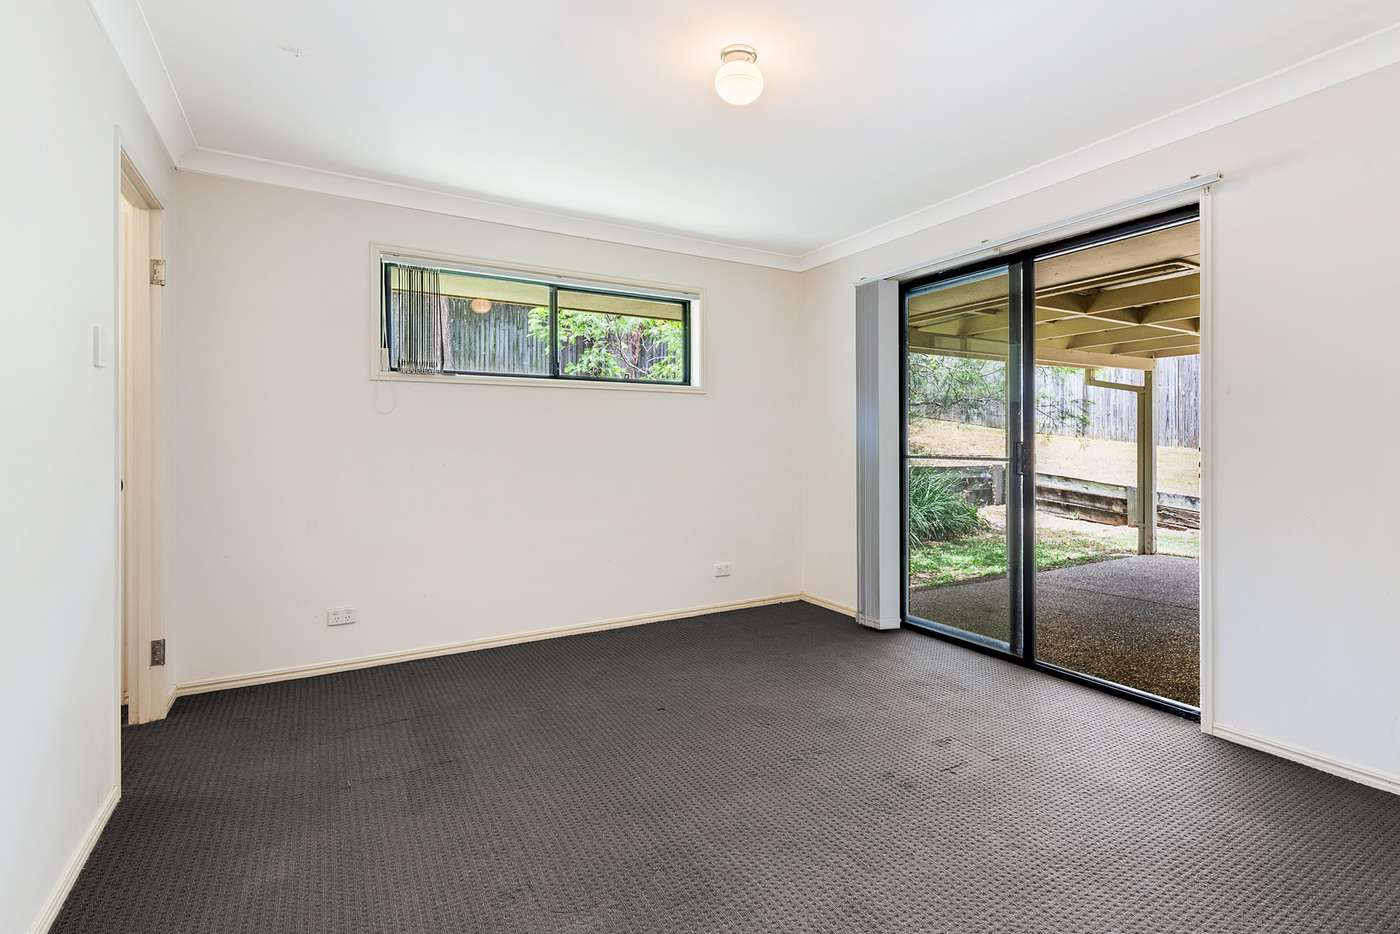 Seventh view of Homely house listing, 74 Kununurra Crescent, Shailer Park QLD 4128